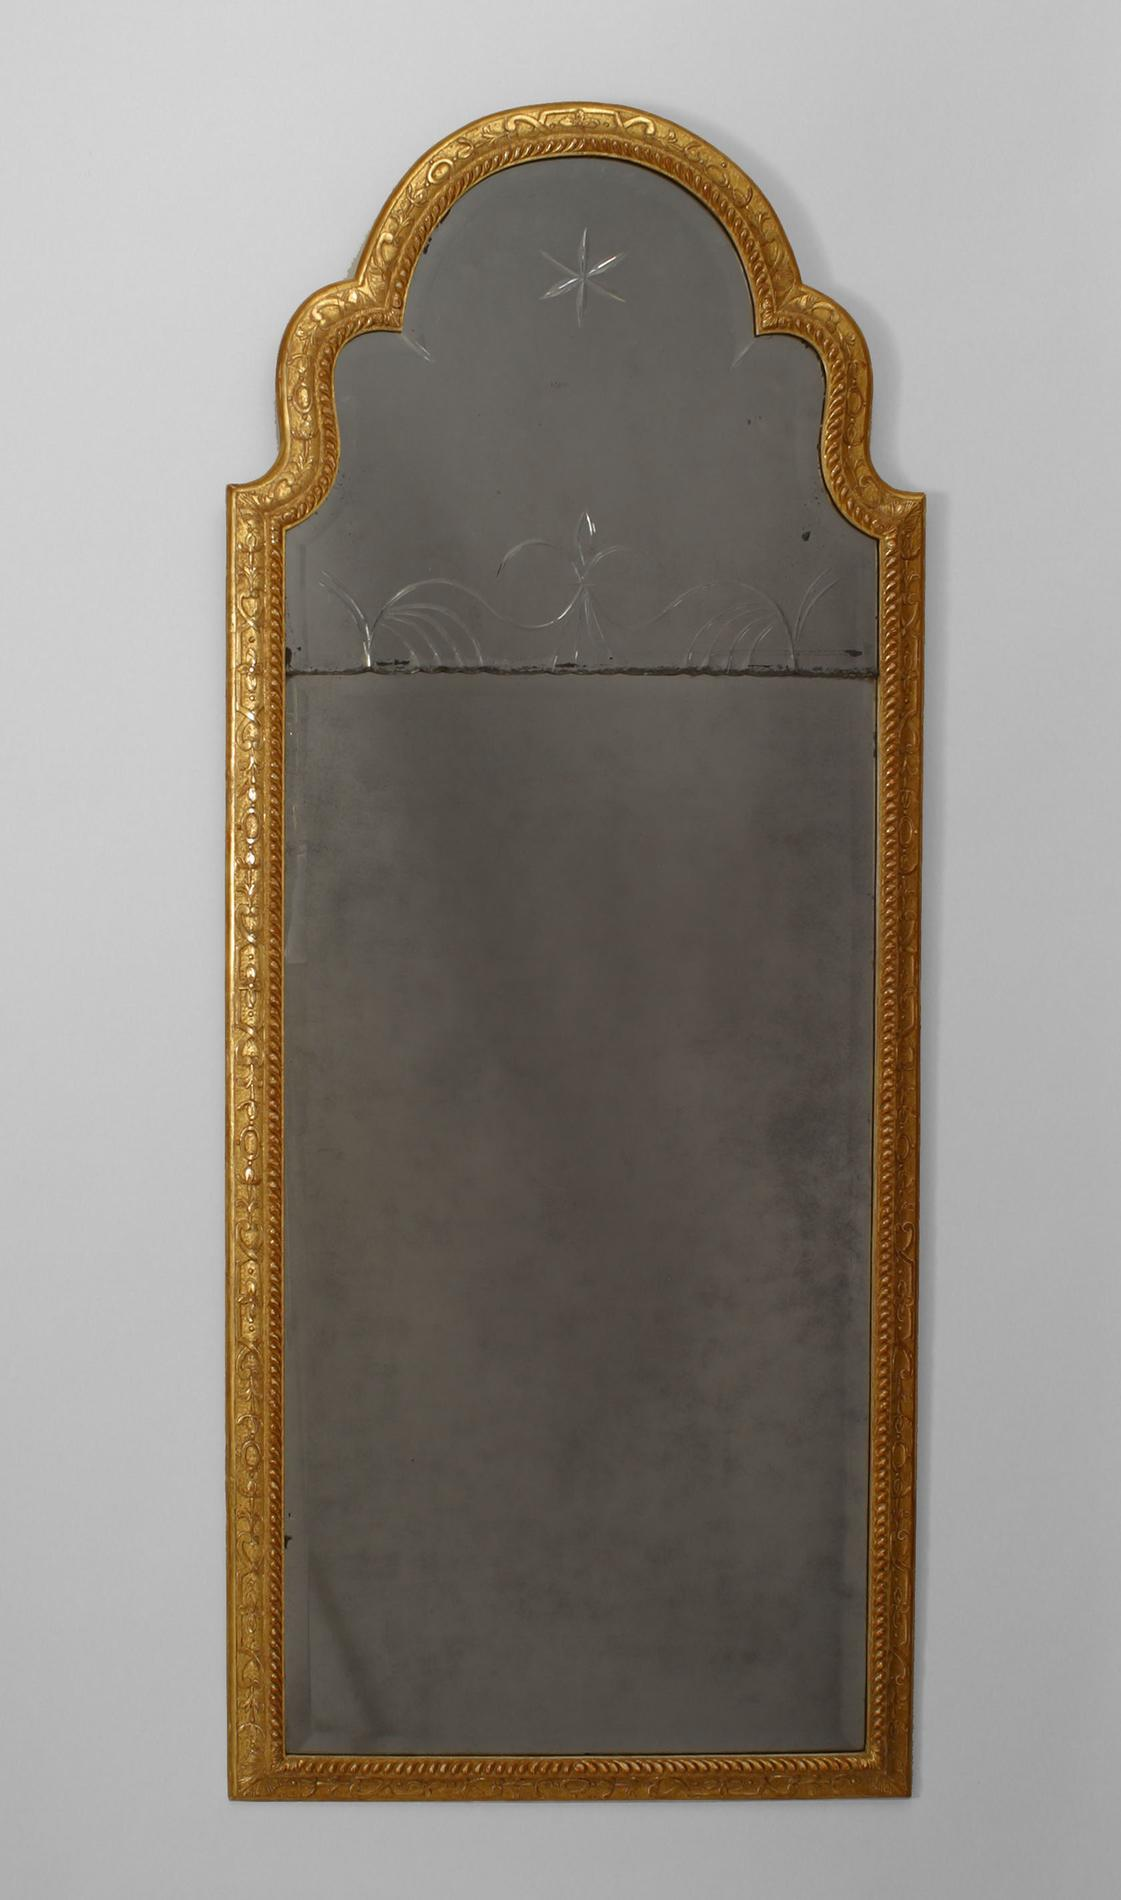 Early eighteenth century English Queen Anne gilt vertical wall mirror with a carved beaded frame with a shaped pediment top with two beveled mirror plates decorated with an etched design.